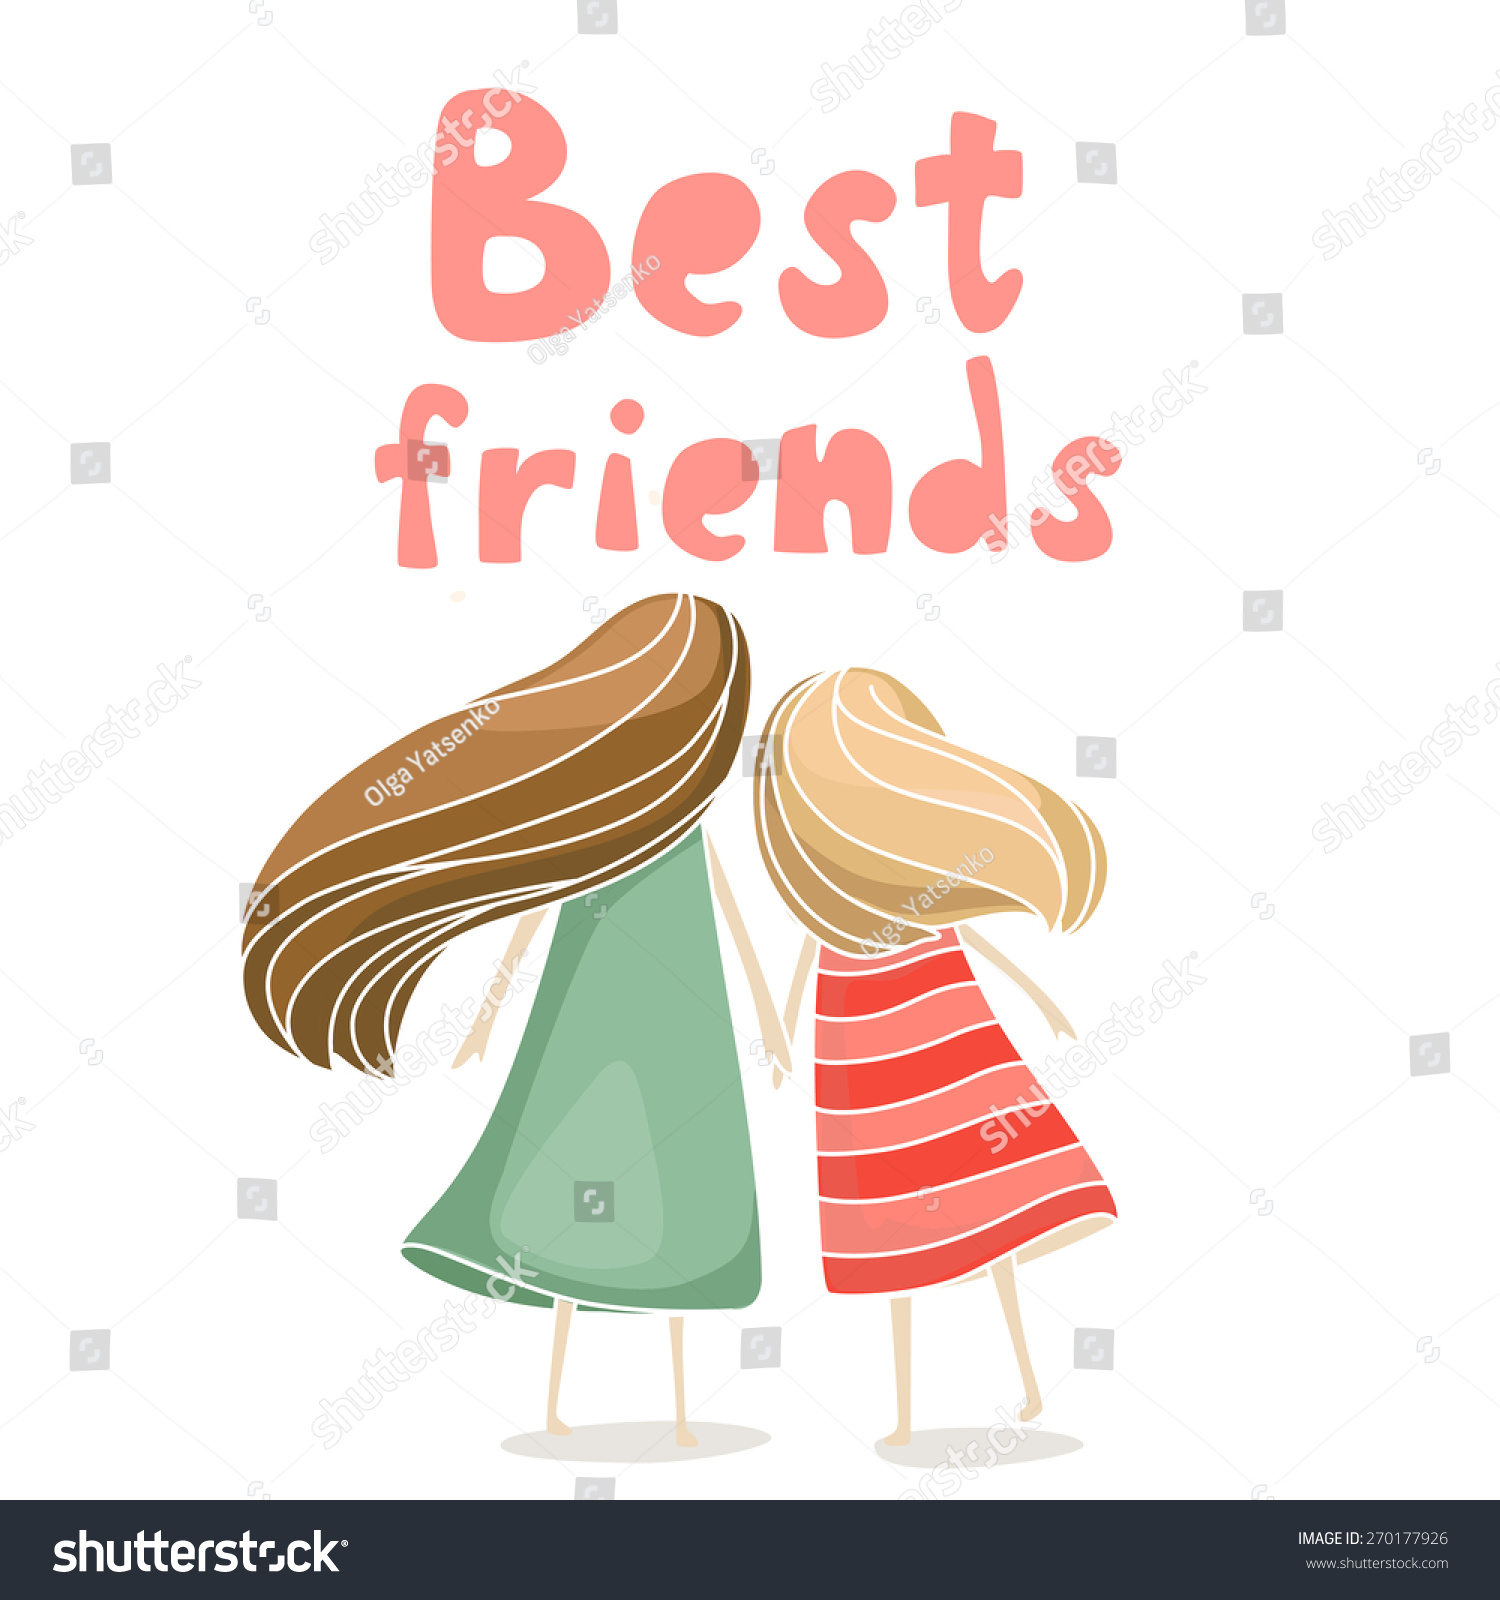 175 Best It S Official I Have A Teenager Images On: Two Best Friends Girls Holding Hands Stock Vector